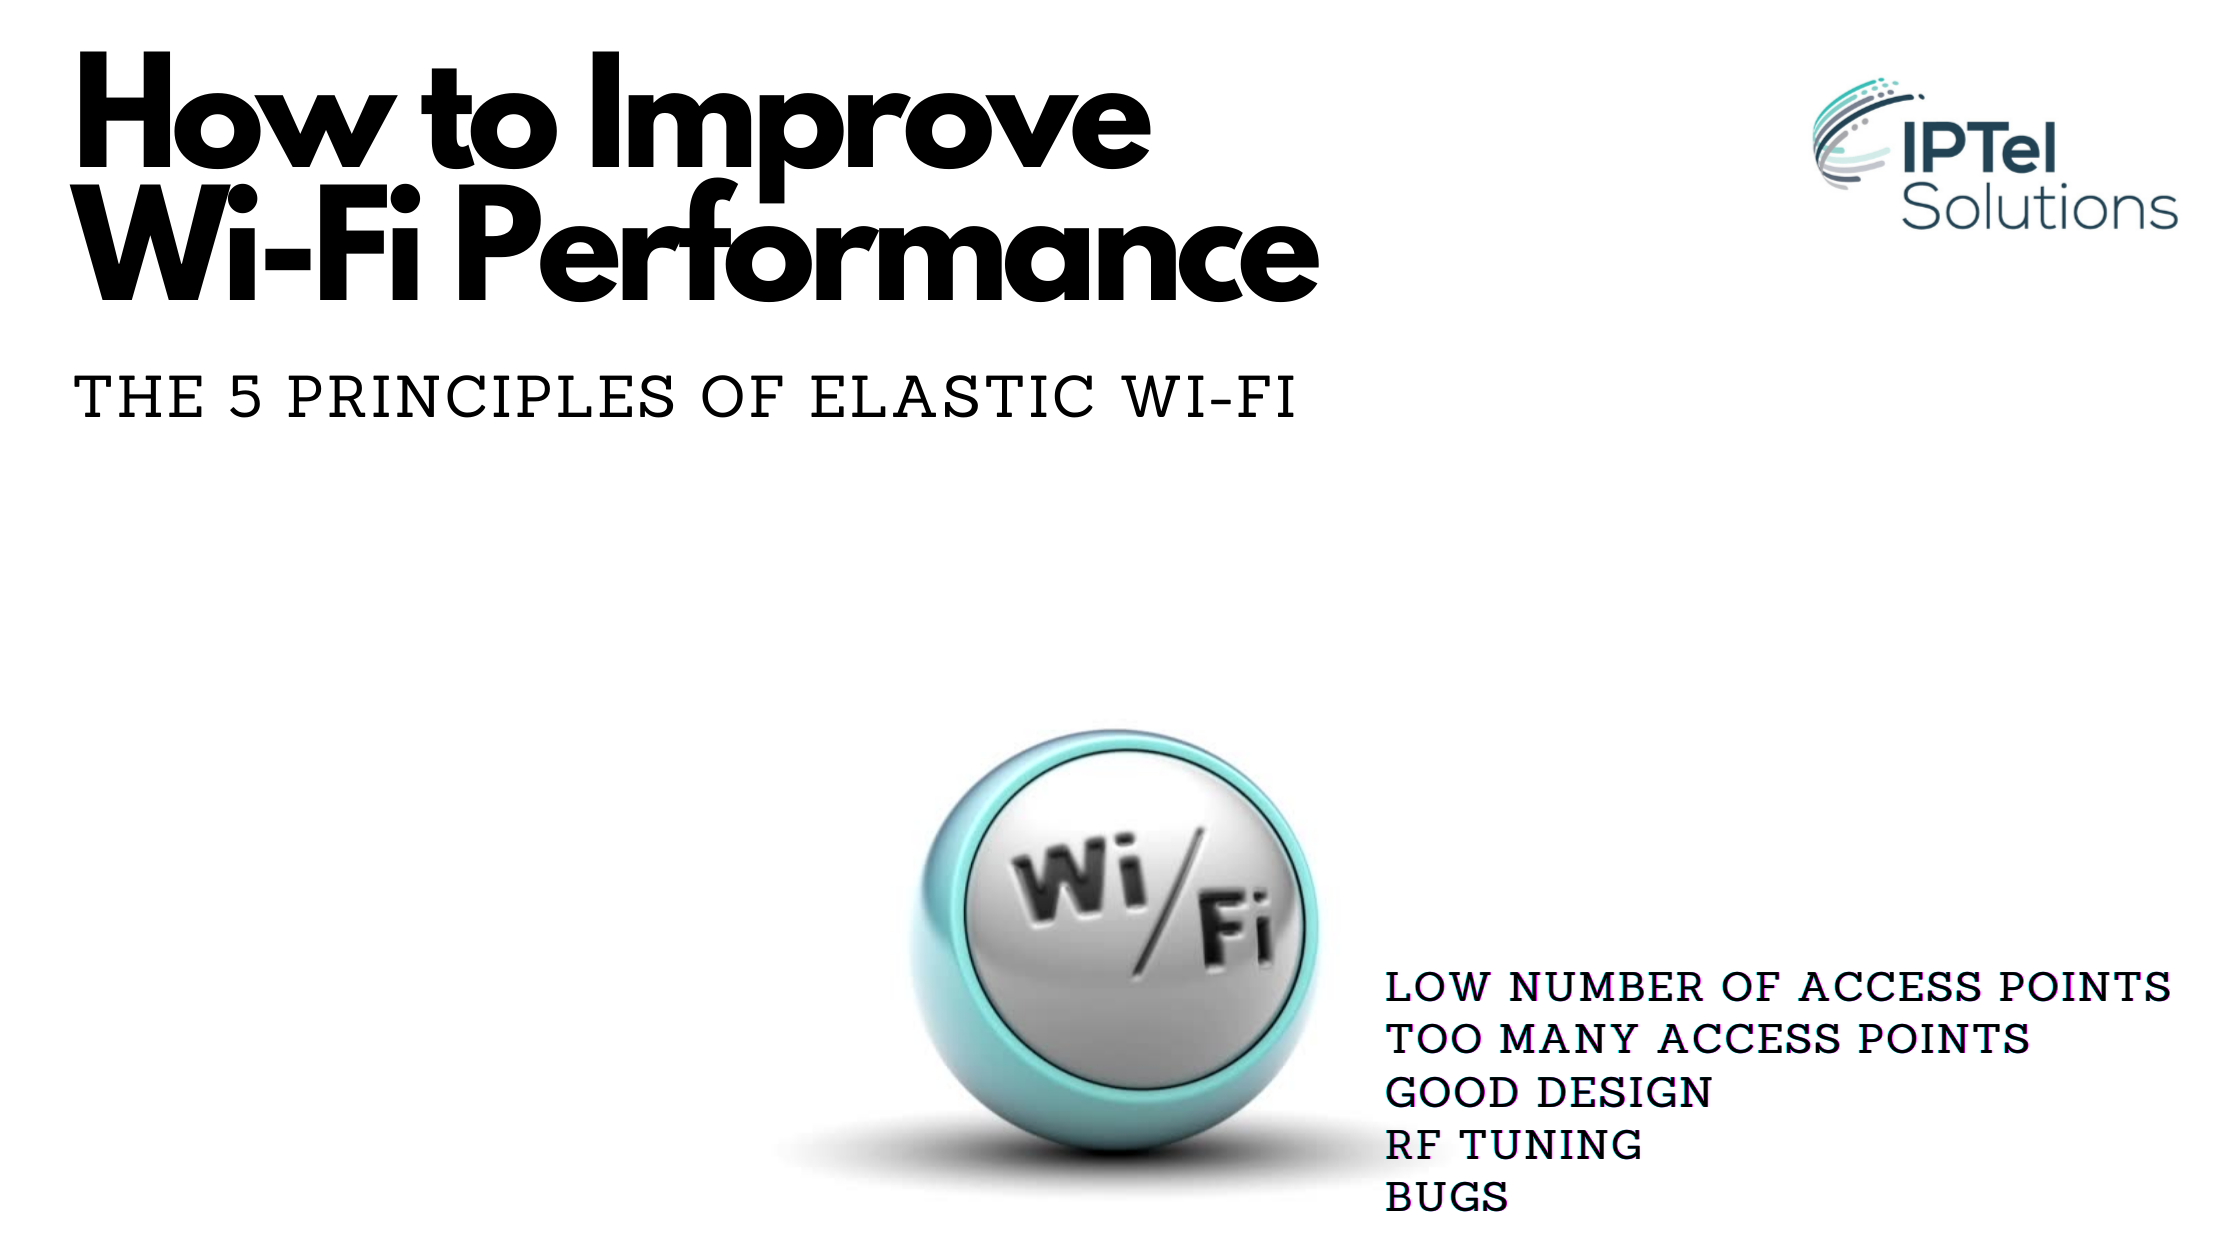 How to Improve Wi-Fi Performance